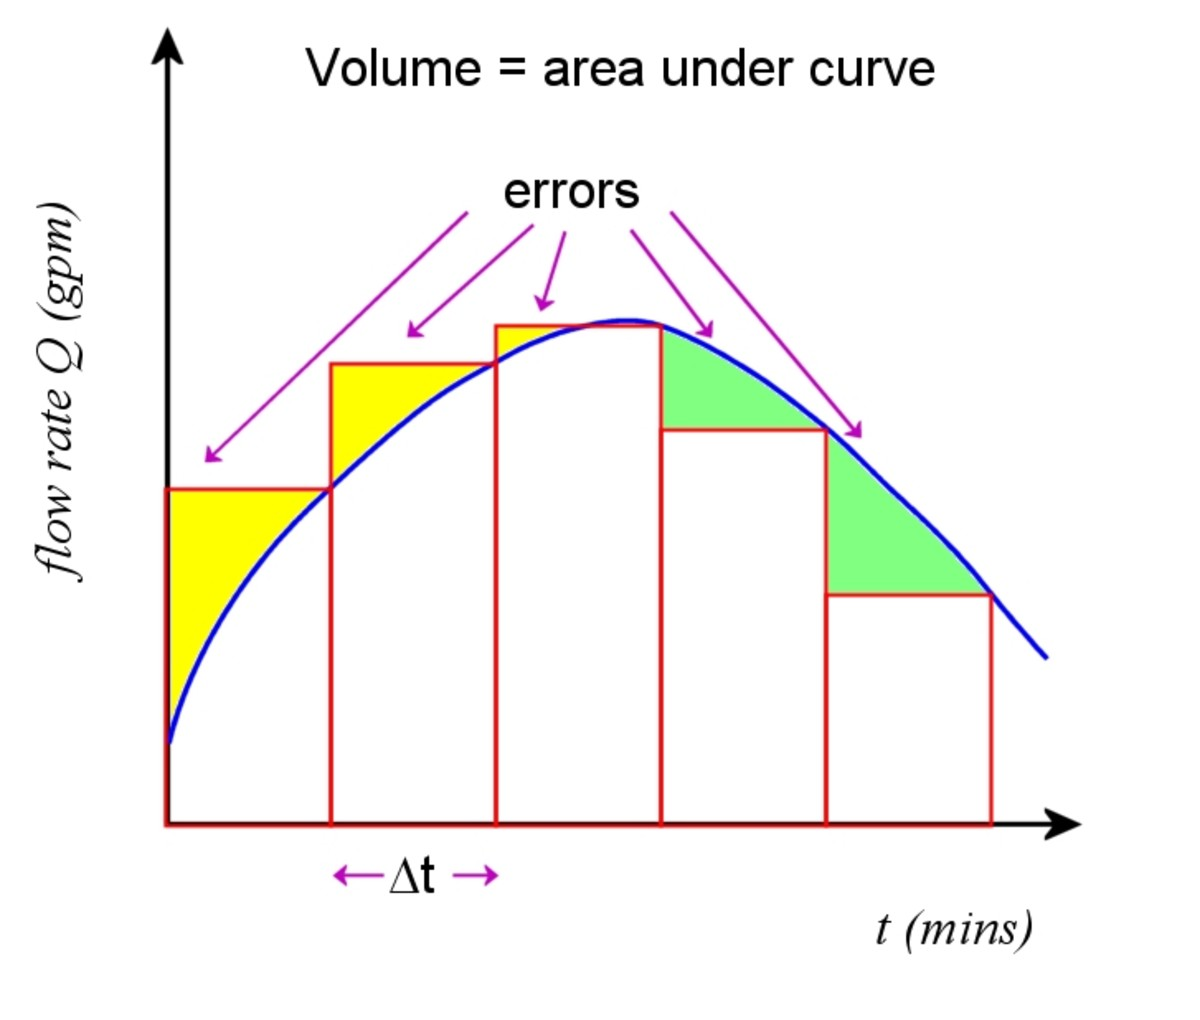 We can get an estimate of area under the curve by summing a series of rectangles.